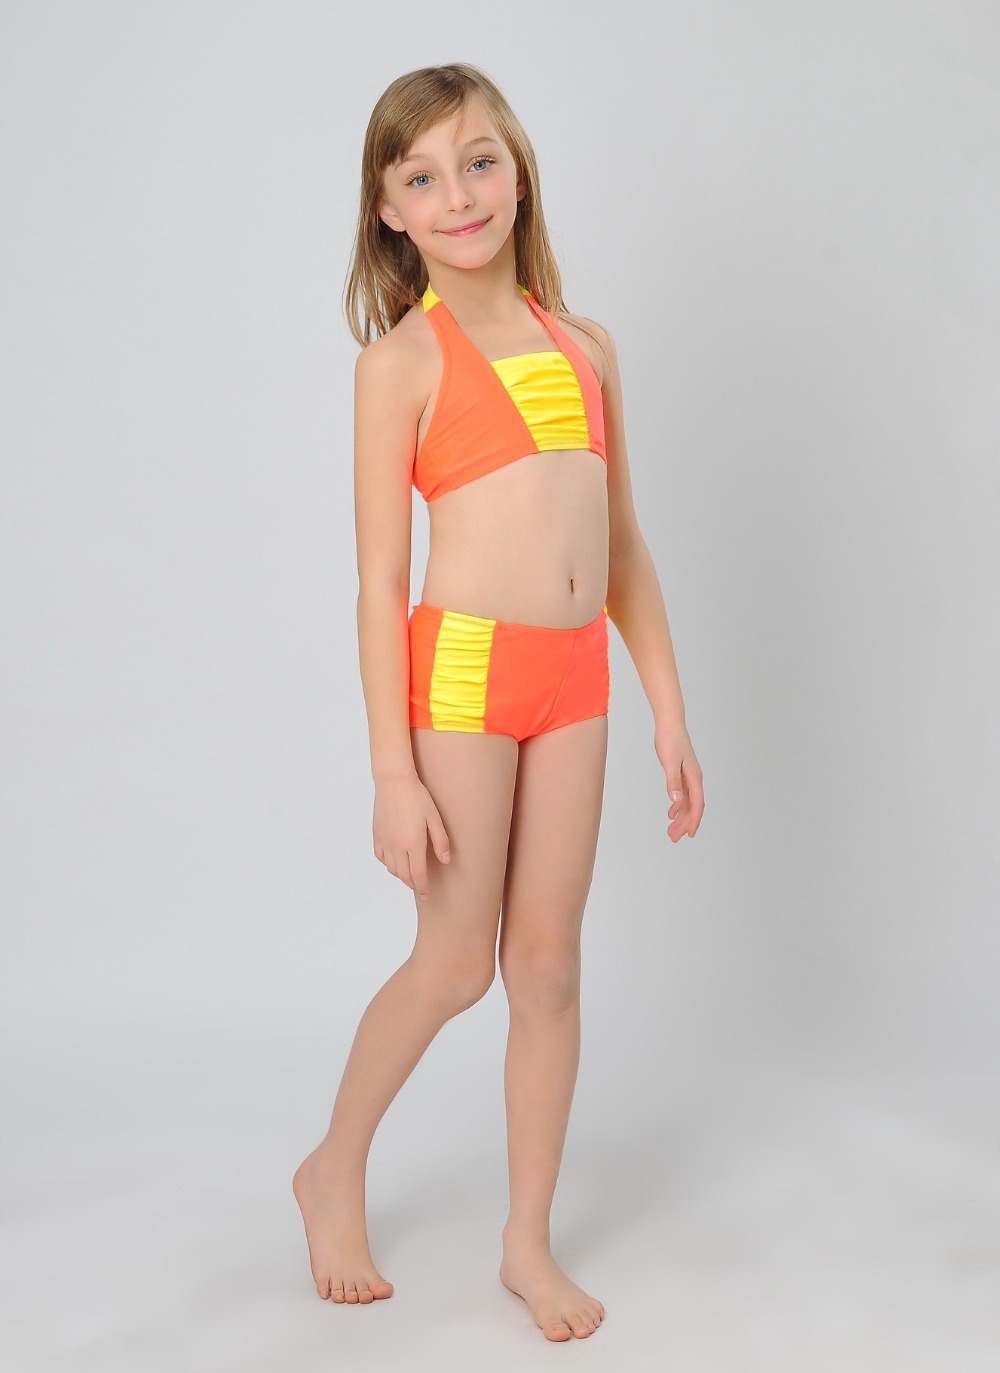 Choosing boys' swimsuits Boys can often be easier to buy for with kids' beachwear than girls. A simple pair of drawstring swim trunks will usually do. Think adjustable straps for girls Young girls' bodies may grow in many ways. In selecting kids' swimwear for young girls, consider how the .